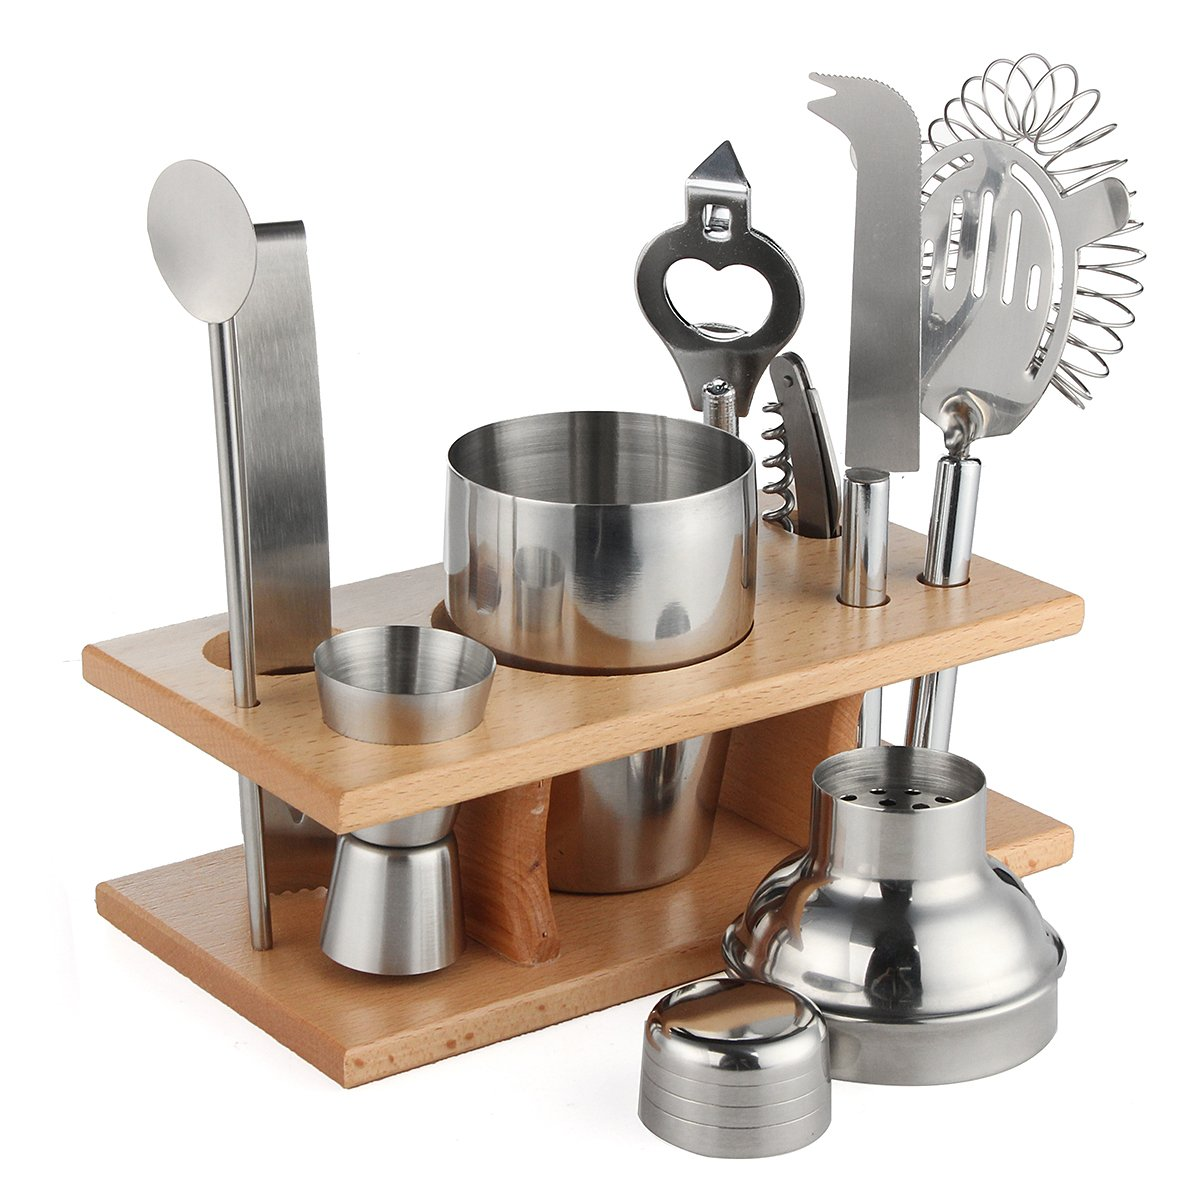 Jeteven Stainless Steel Barware Kit 9 Pcs Cocktail Set - Cocktail Shaker,Ice clip,Measuring Cup,Beer Bottle Opener,Wine Opener,Fruit Knife,Wooden Rack,Ice Filter,Round Straw Spoon